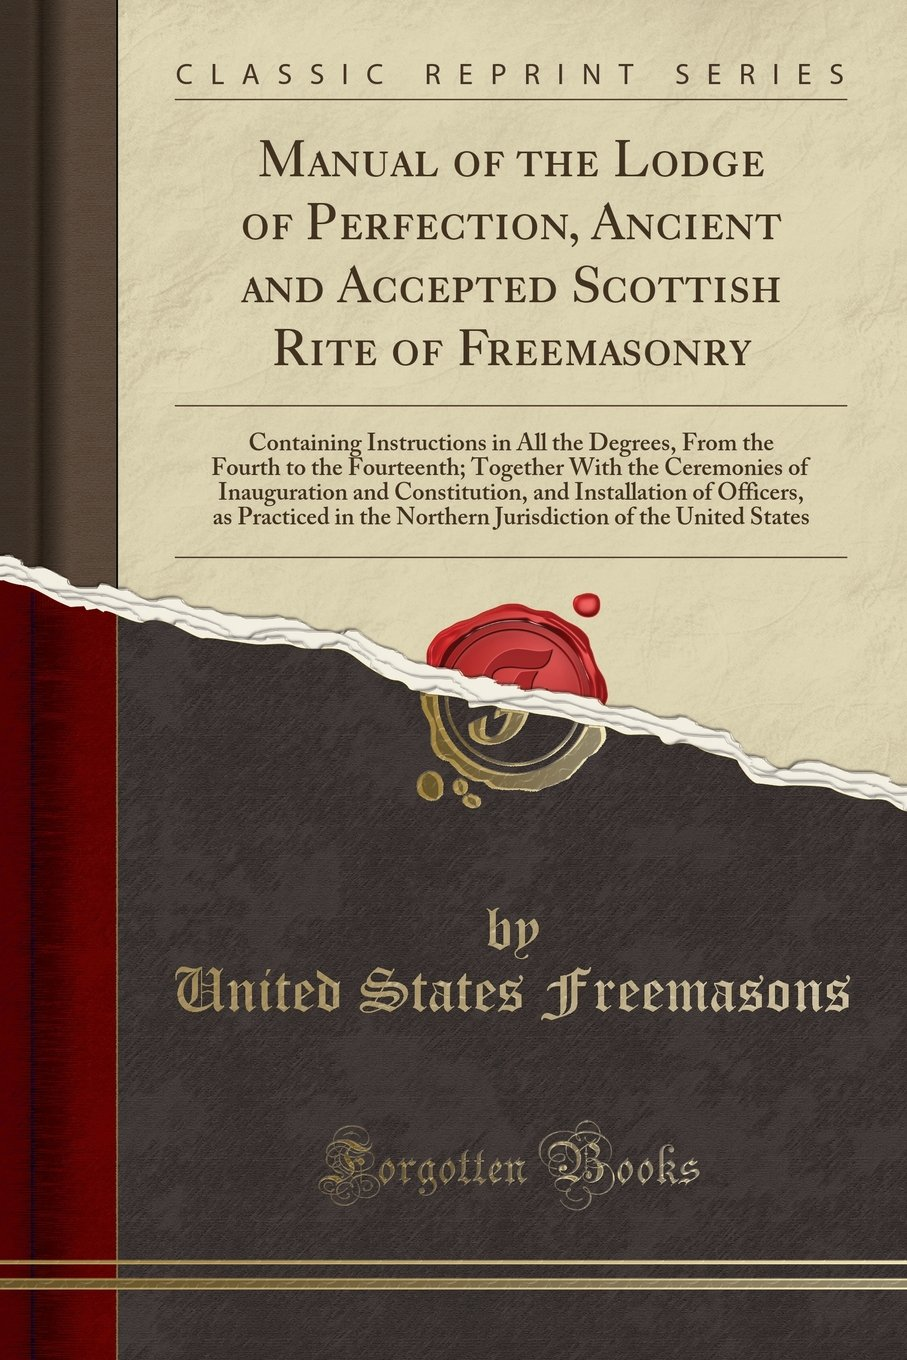 Manual of the Lodge of Perfection, Ancient and Accepted Scottish Rite of Freemasonry: Containing Instructions in All the Degrees, From the Fourth to and Constitution, and Installation of Officer